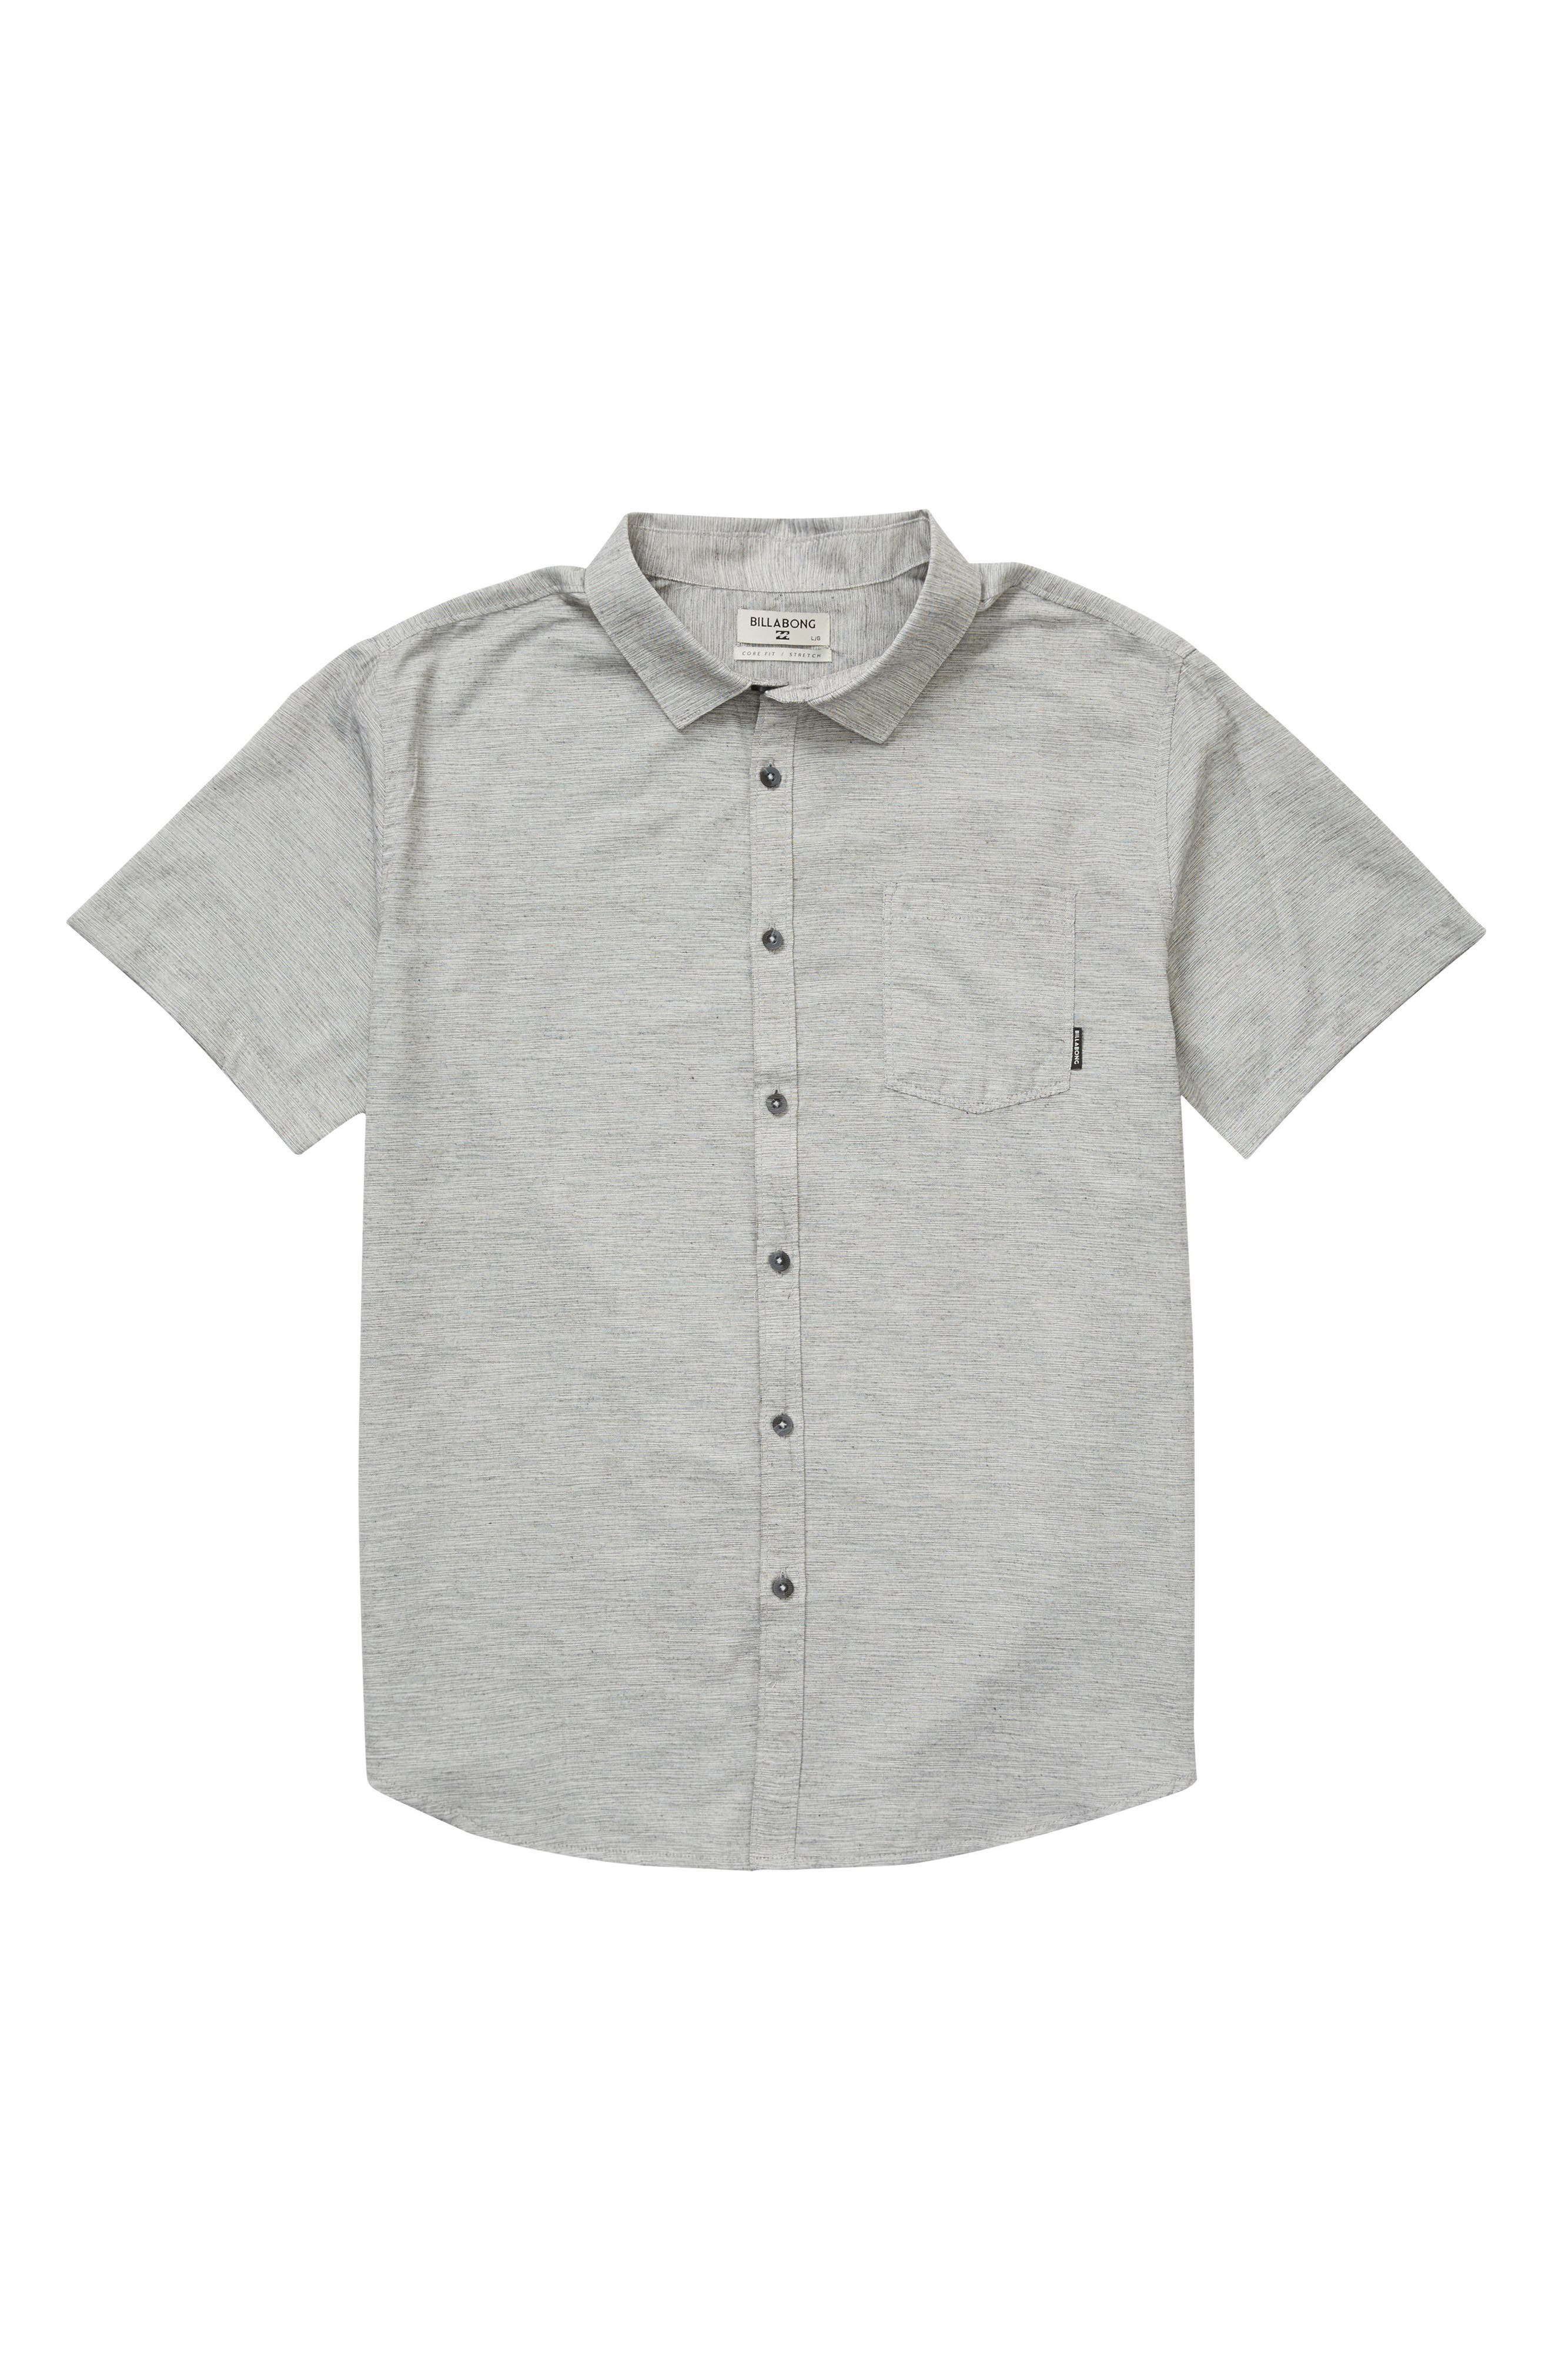 All Day Helix Woven Shirt,                             Main thumbnail 1, color,                             Light Grey